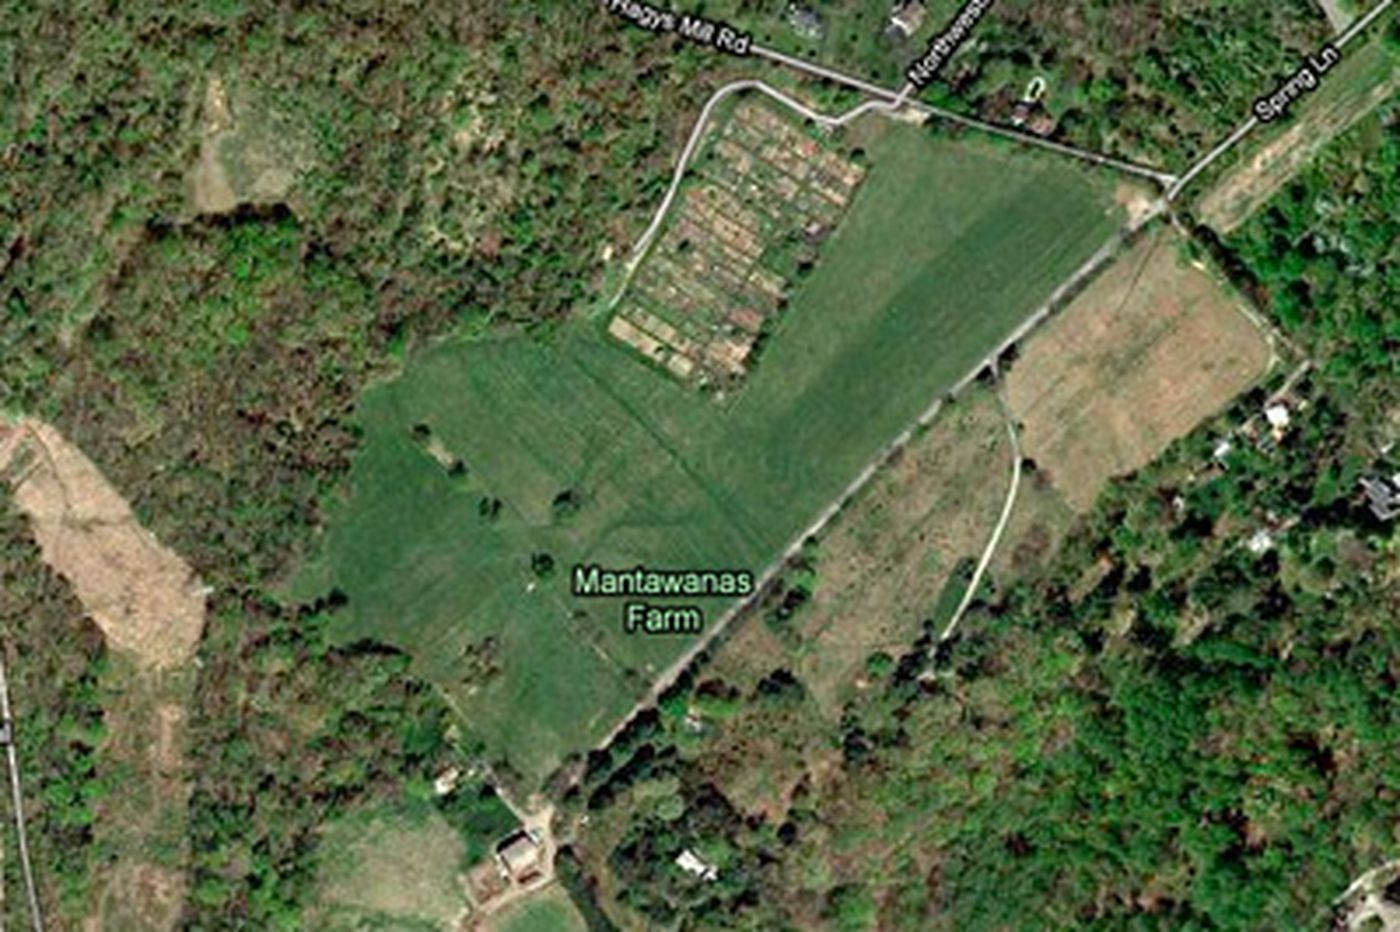 Philadelphia Council panel opposes expanded community garden at Manatawna Farm